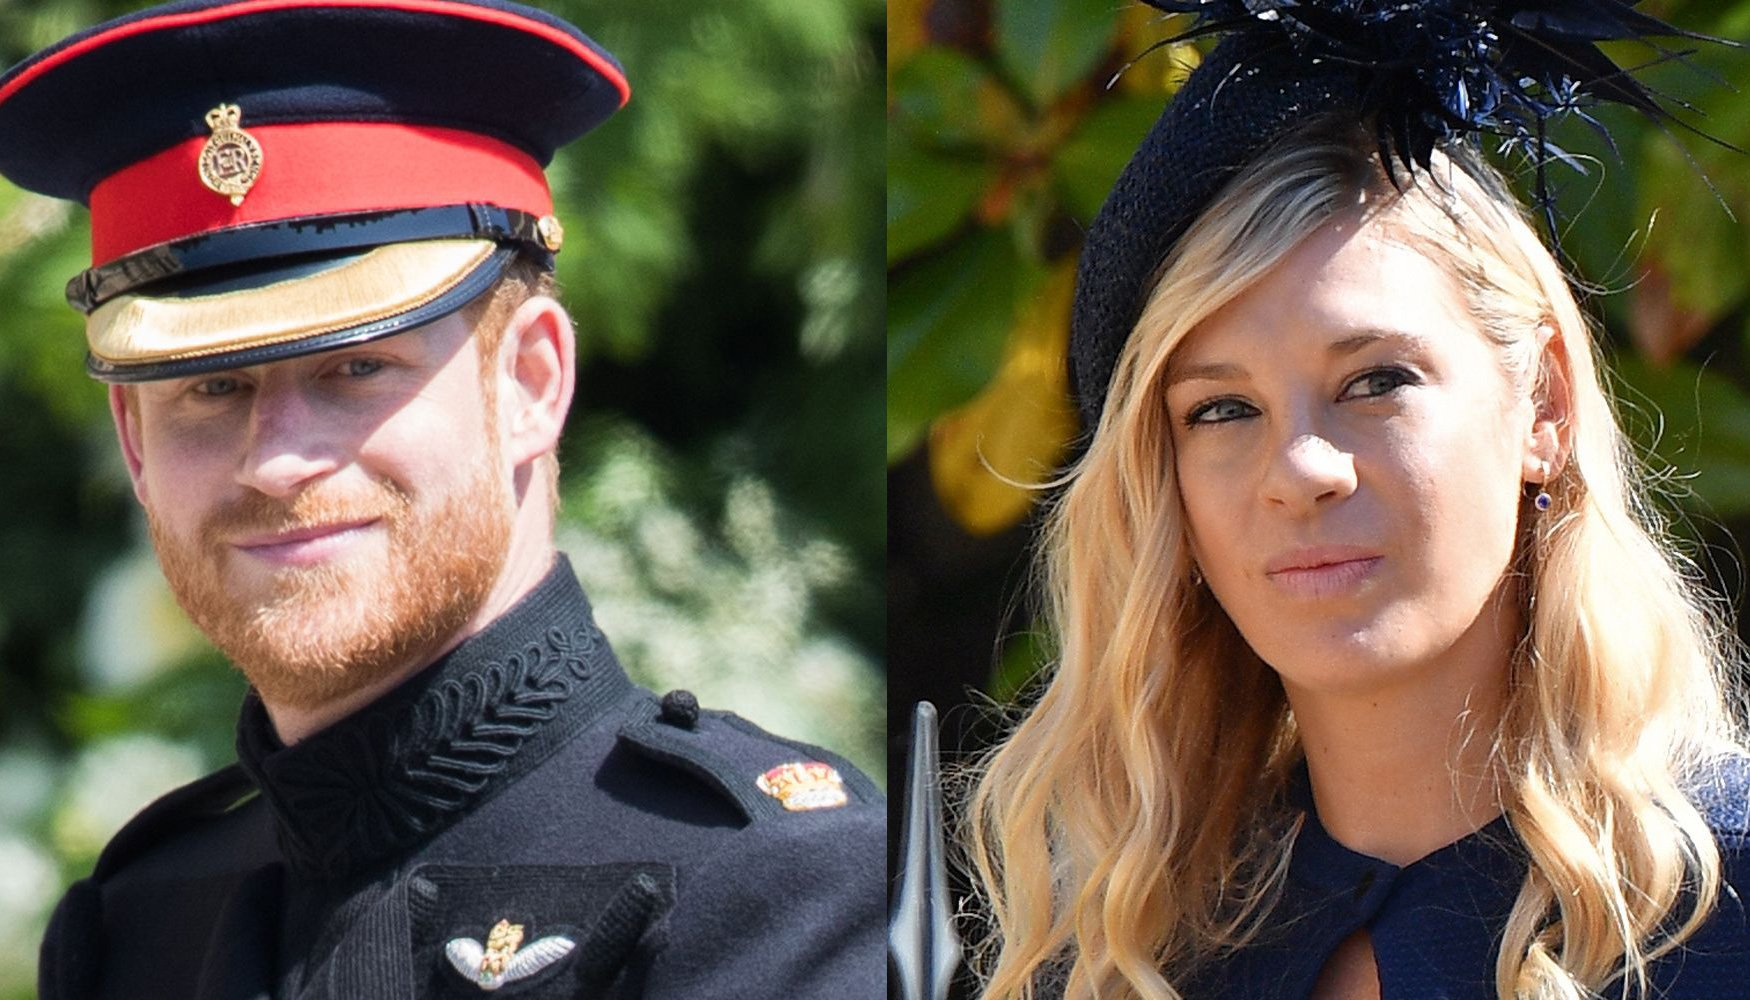 Would Prince Harry have really spoken to Chelsy Davy the